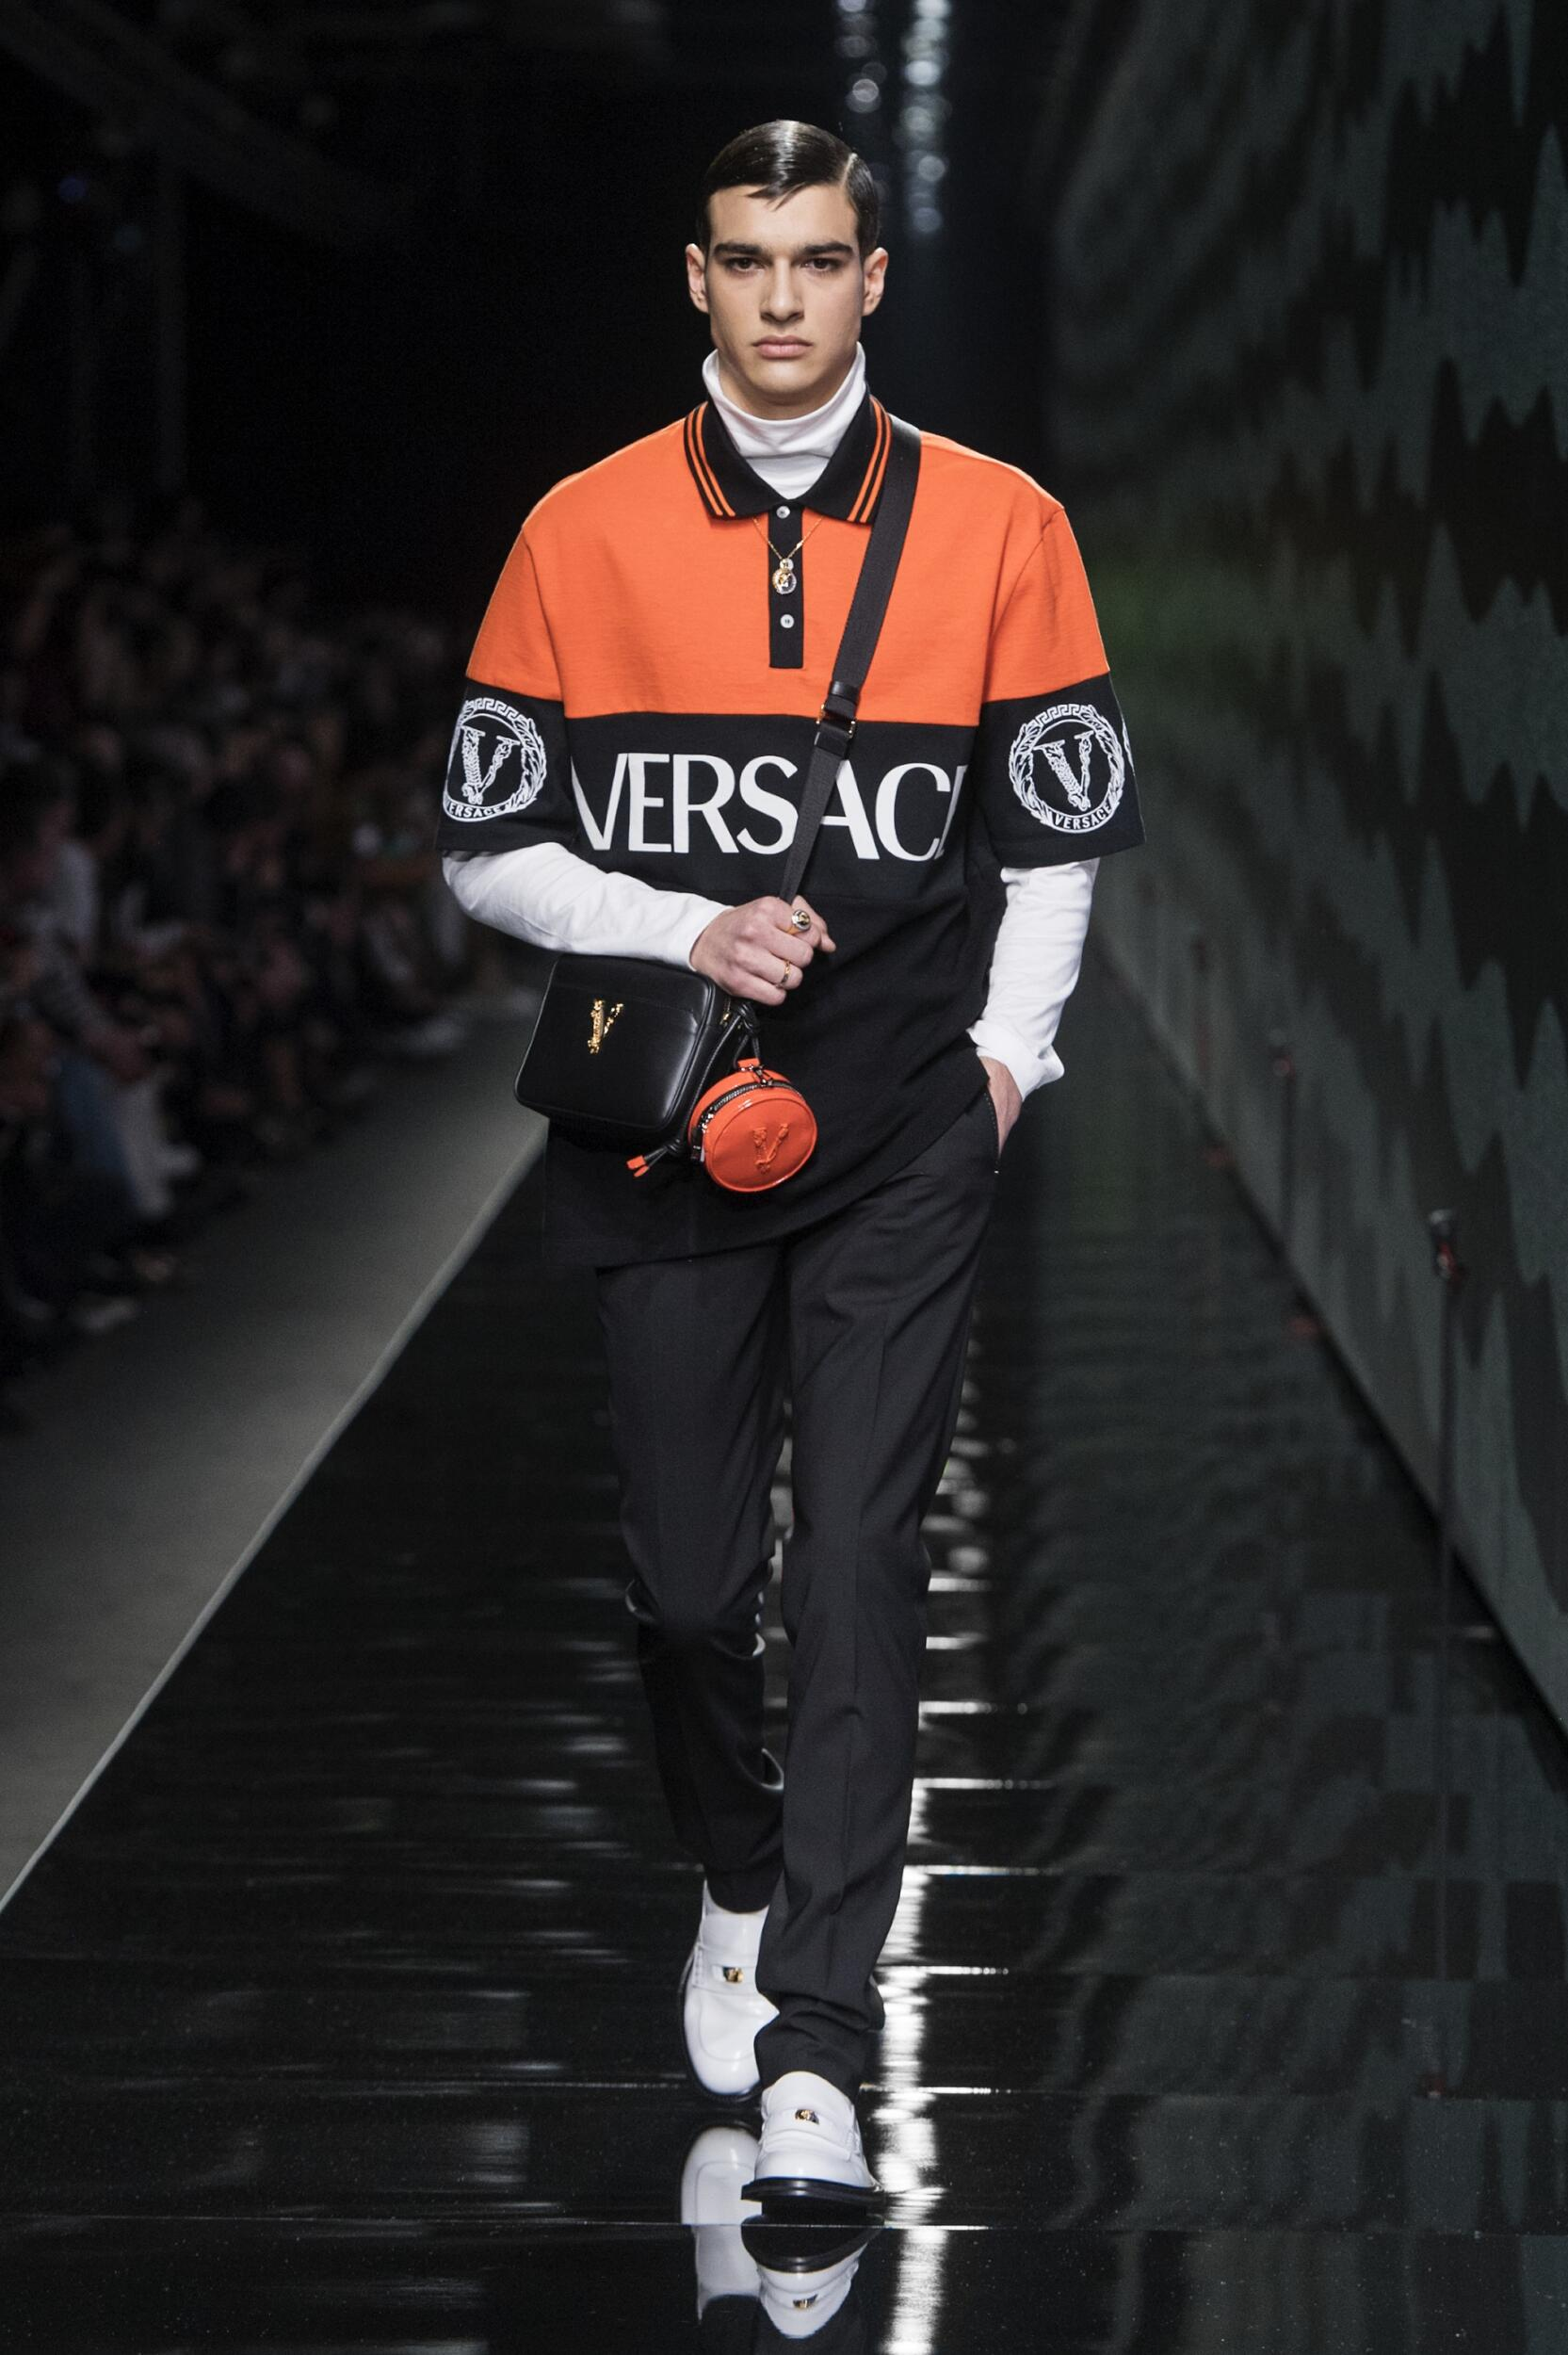 Versace Menswear Collection Trends